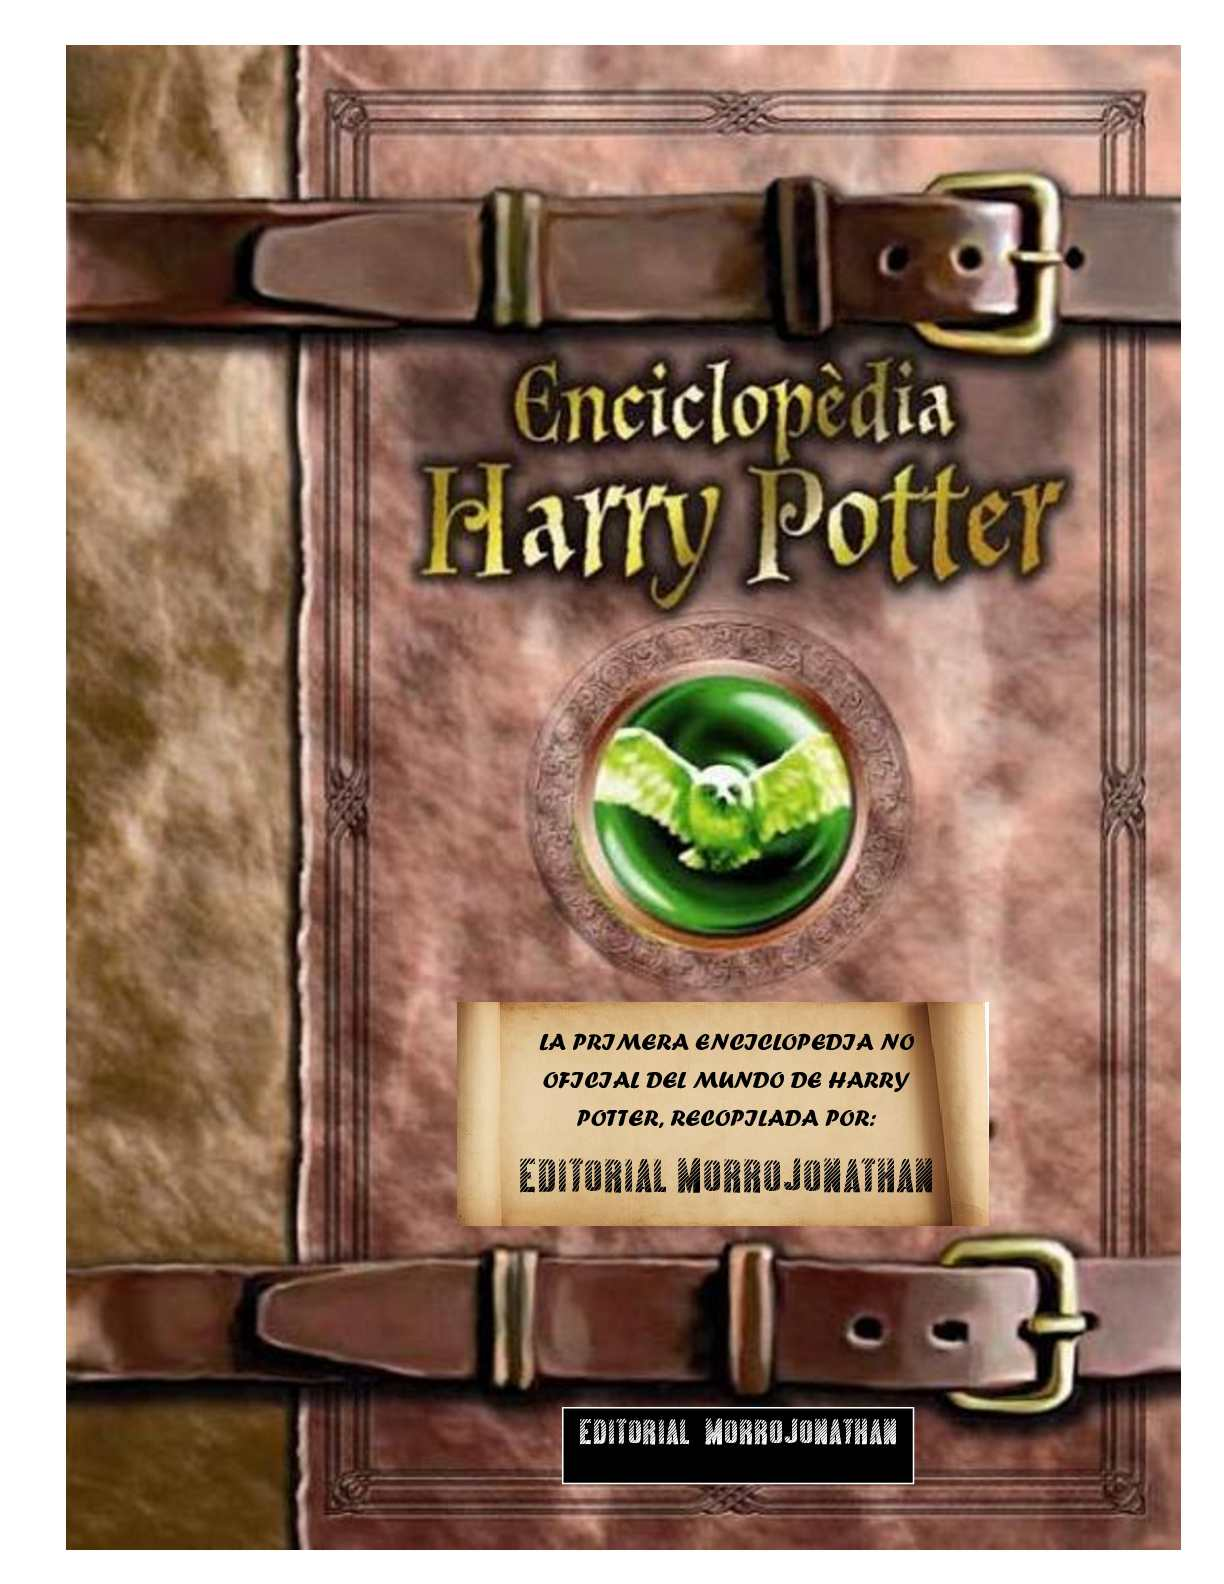 Calameo Enciclopedia Harry Potter Contribute to bodigrim/durmstrang development by creating an account on github. calameo enciclopedia harry potter